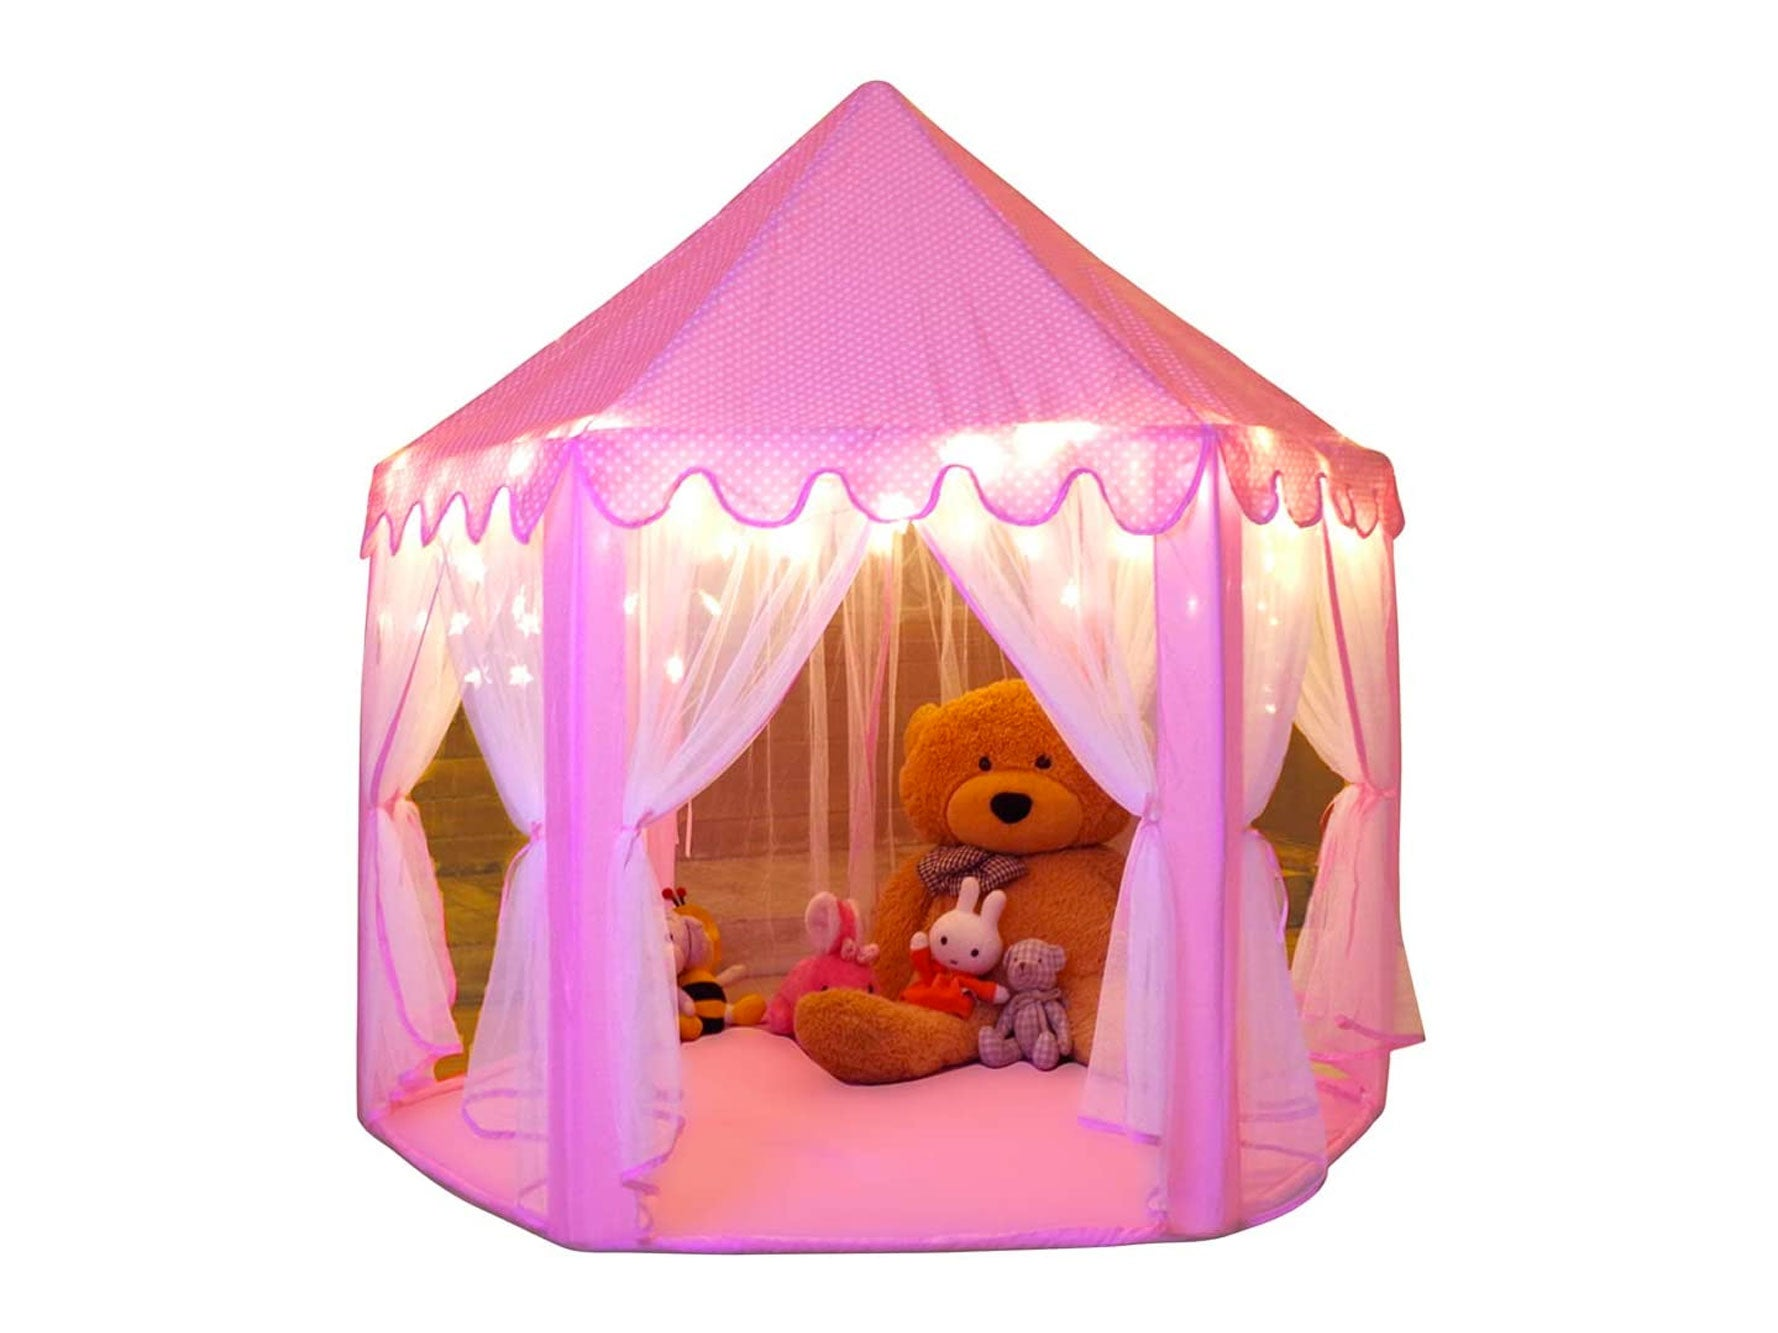 Monobeach Princess Tent Girls Large Playhouse Kids Castle Play Tent with Star Lights